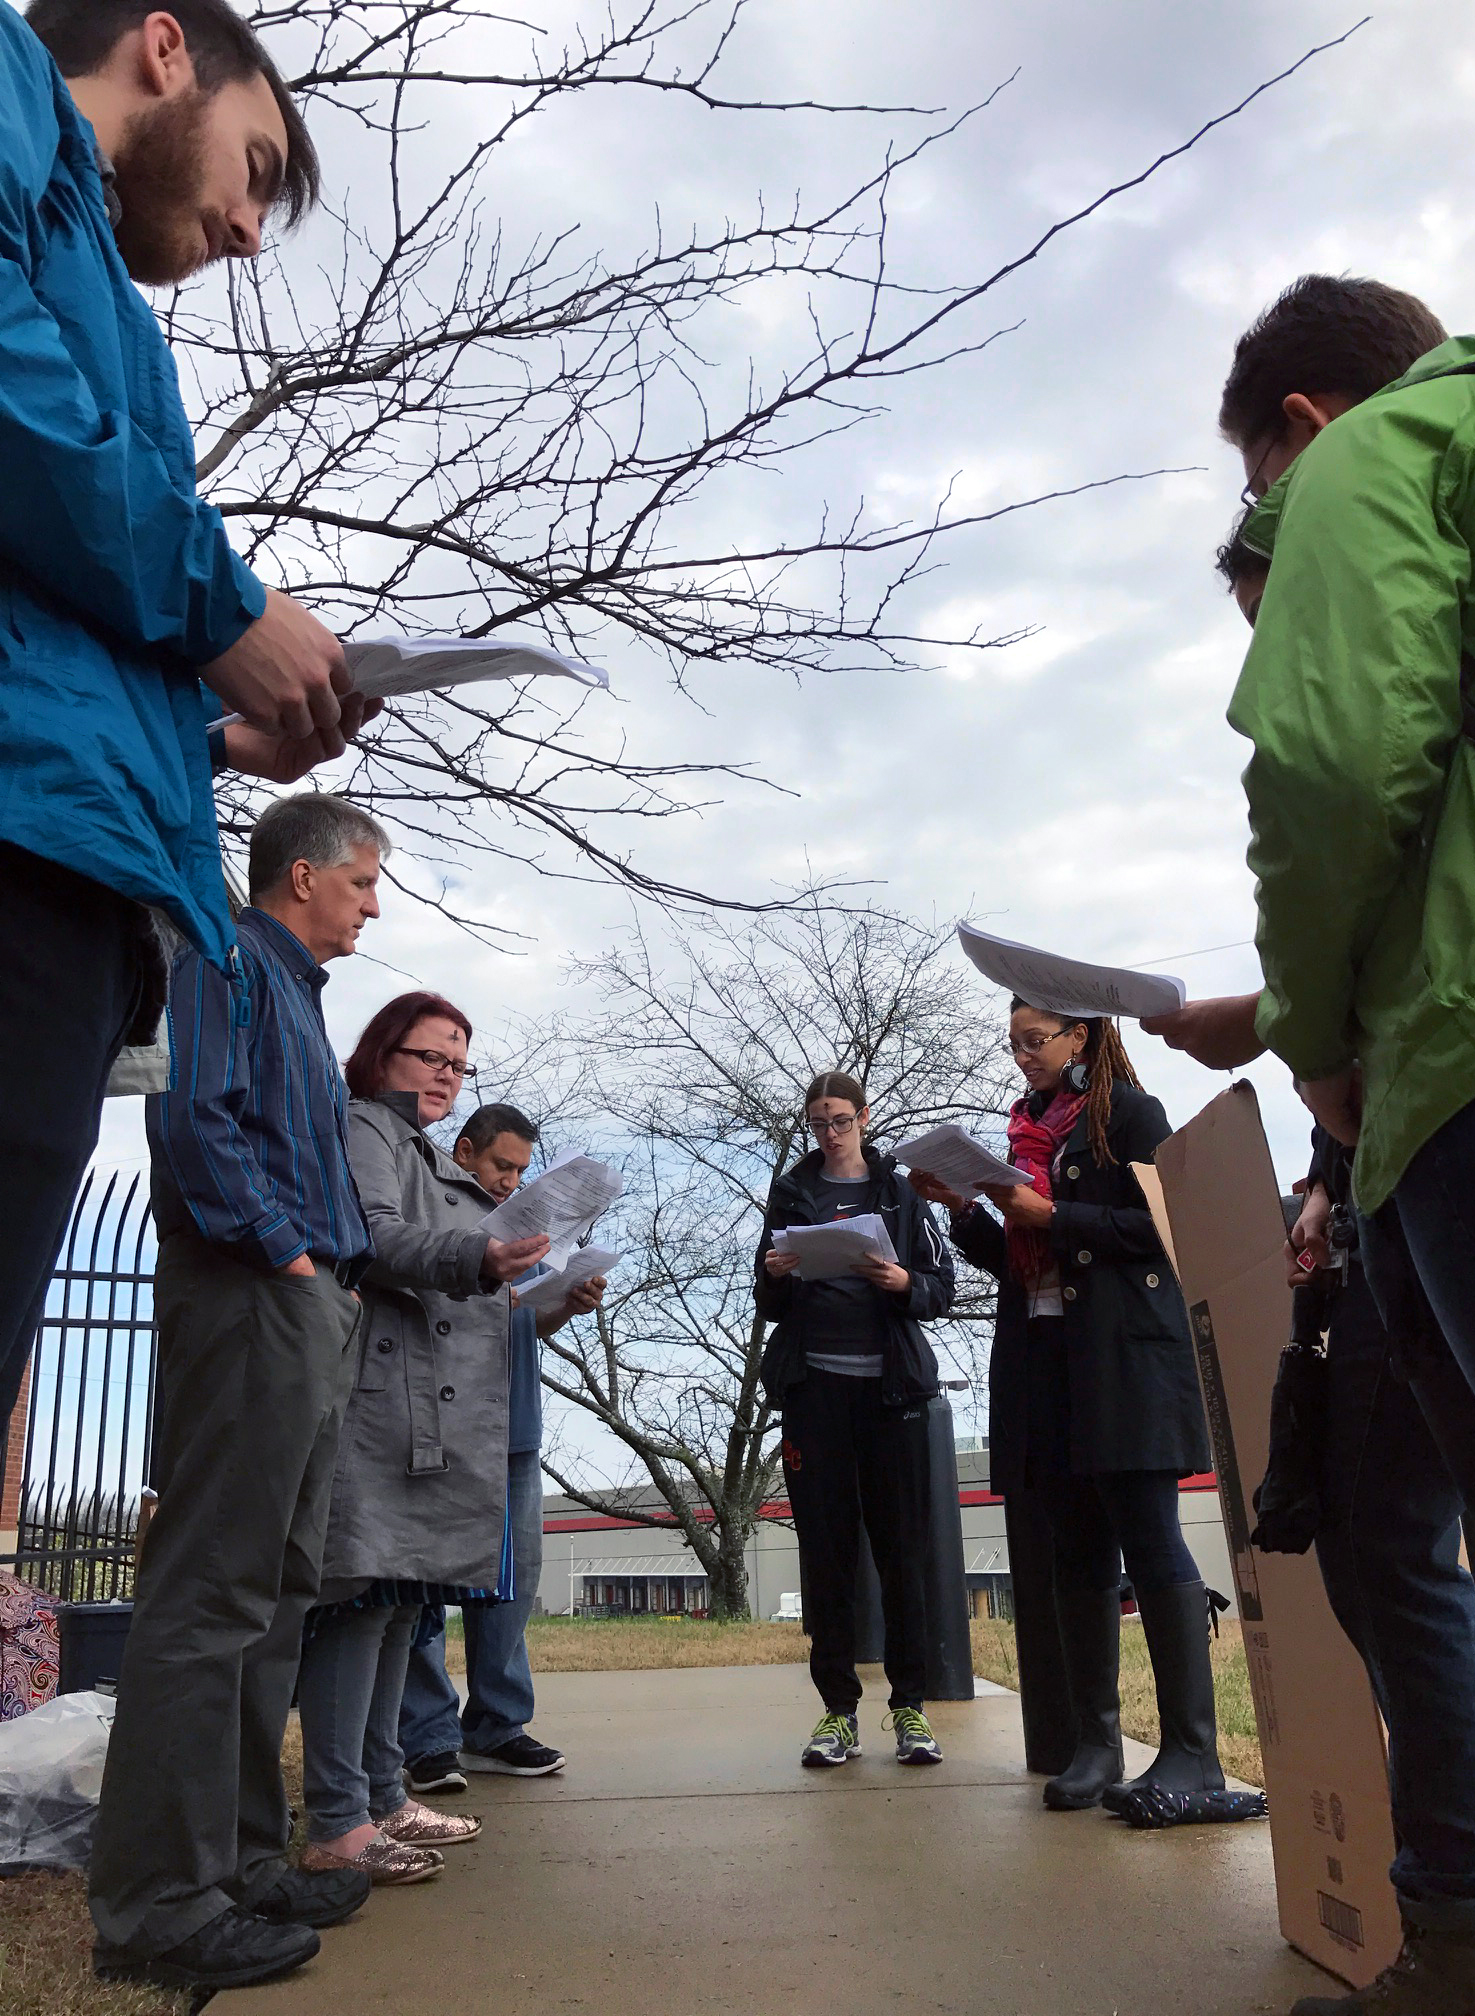 Clergy and laypeople from several denominations who are members of the Nashville Community Defense held a prayer vigil in front of the local Immigration and Customs Enforcement agency March1. Photo by Sophia K. R. Agtarap, UMNS.